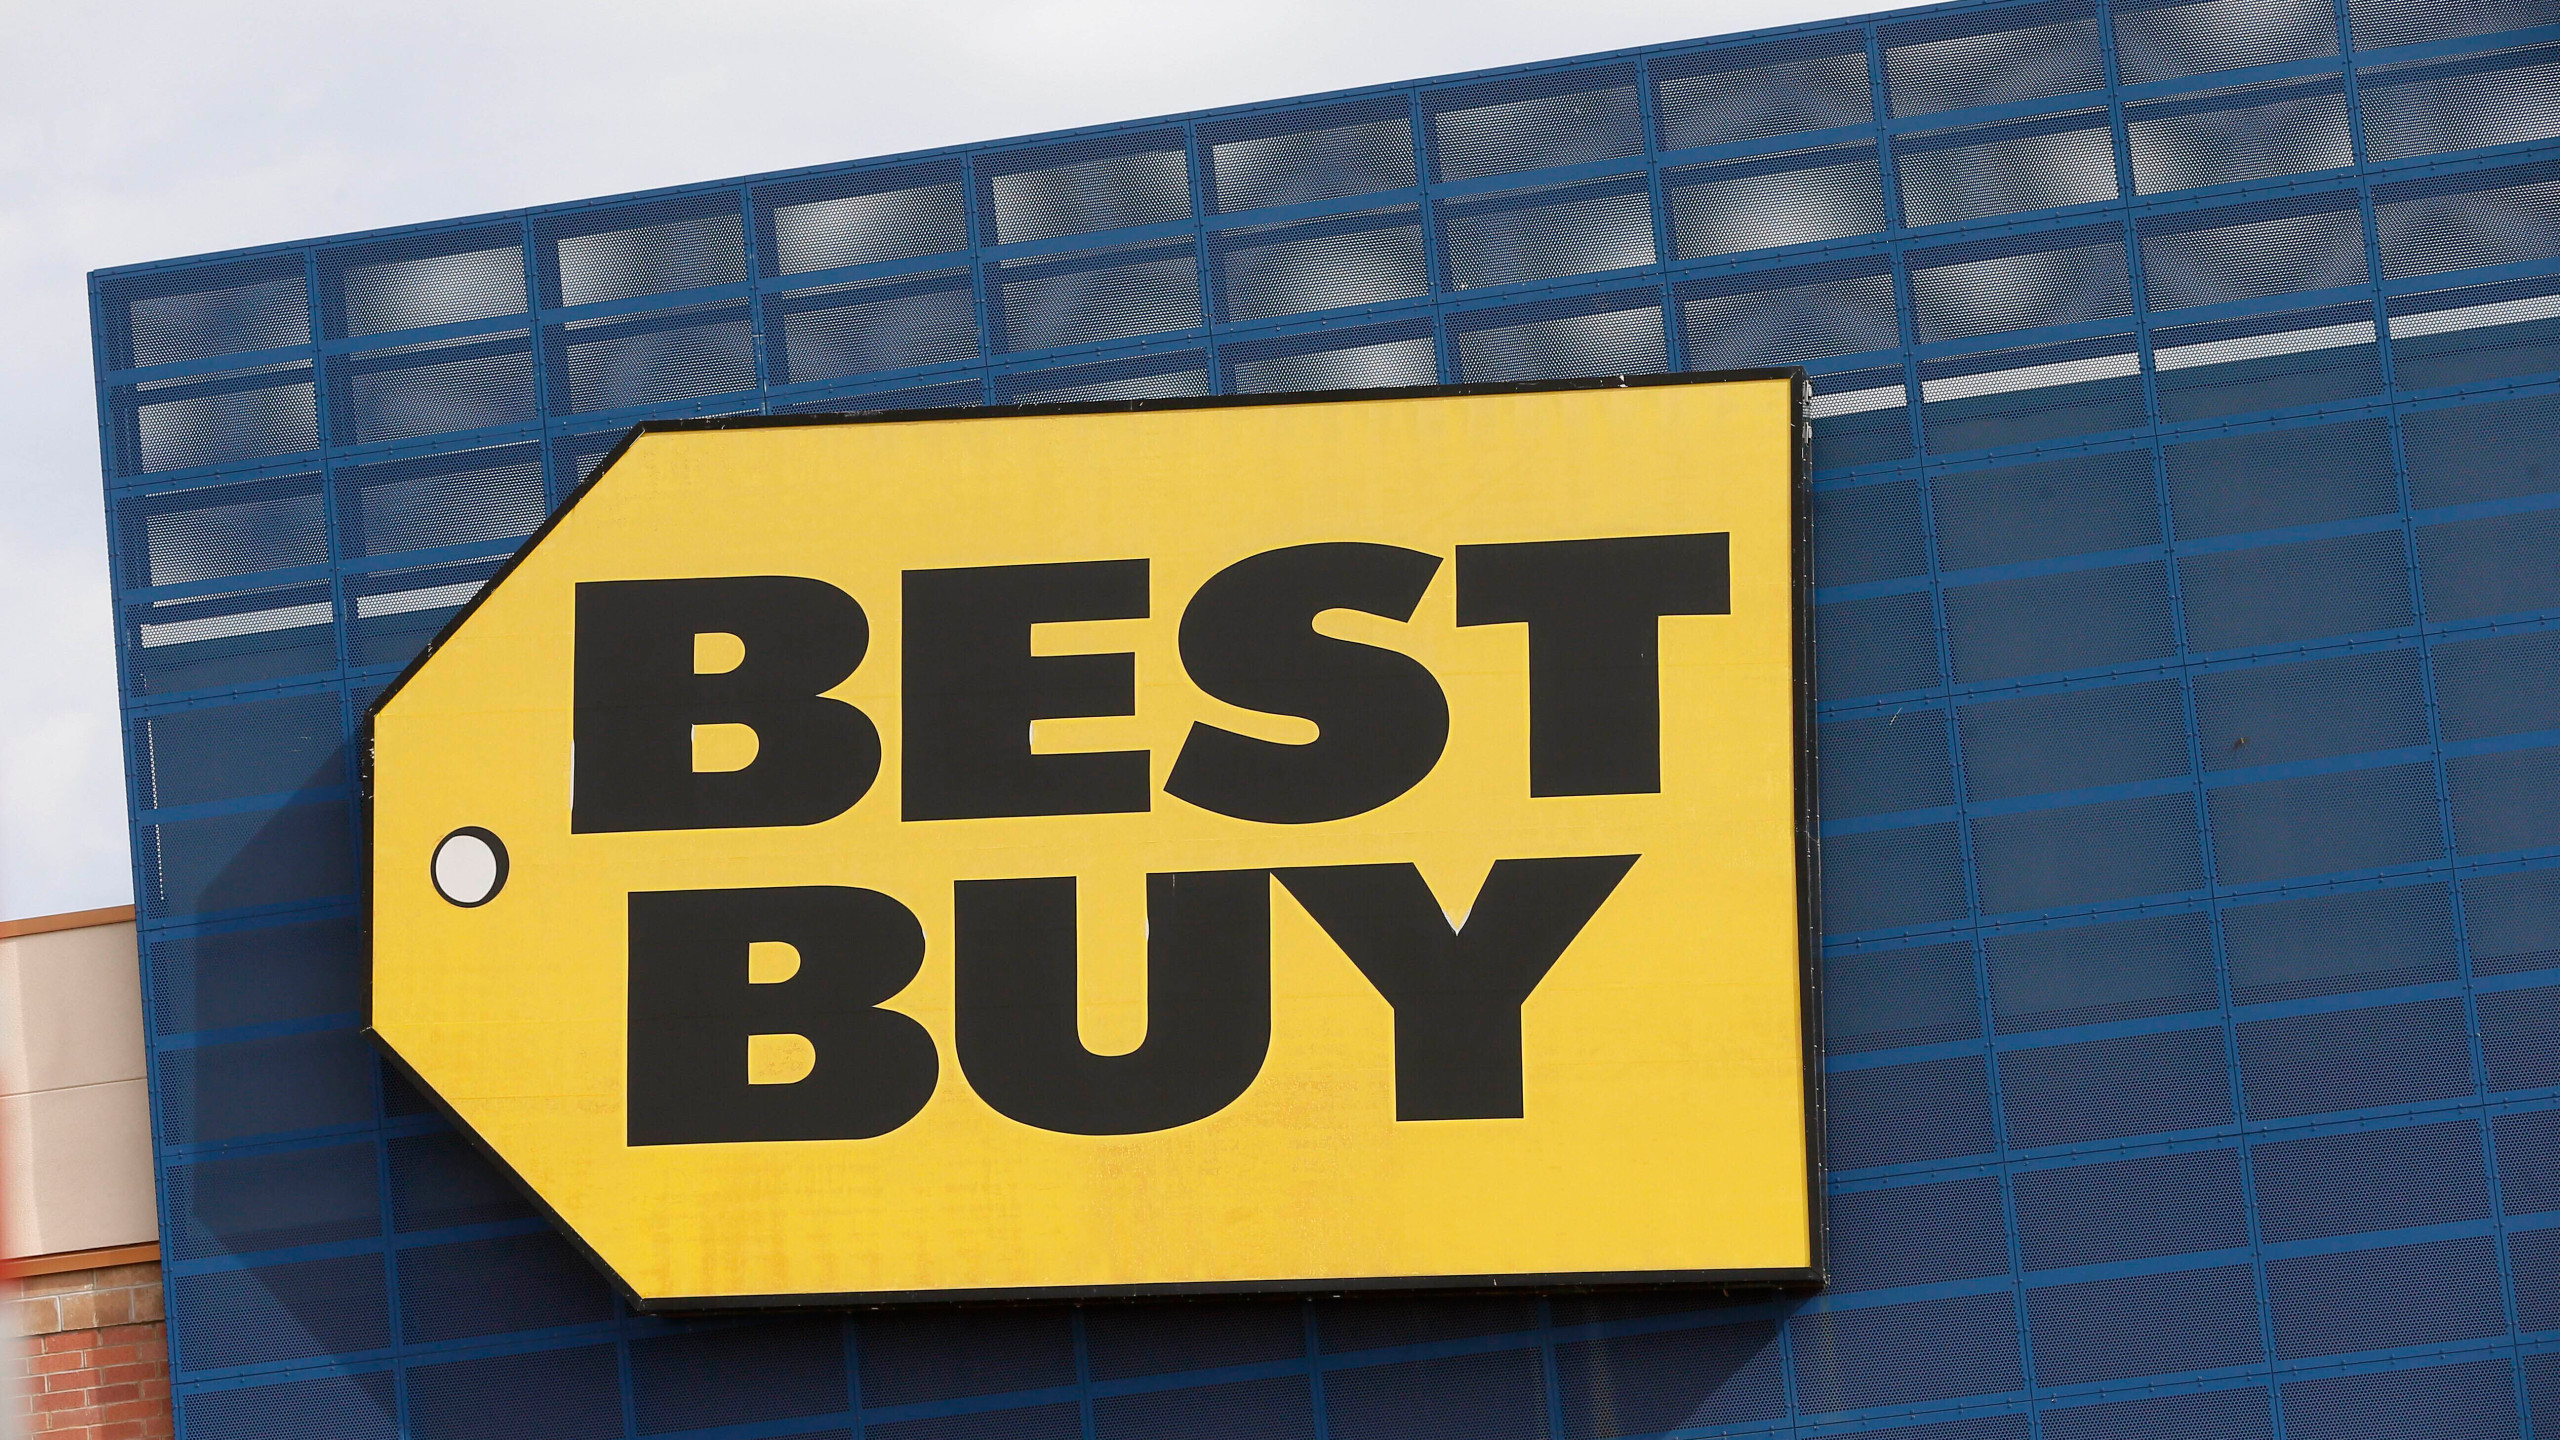 Best Buy Logo - No customers inside Best Buy stores, switching to curbside service ...